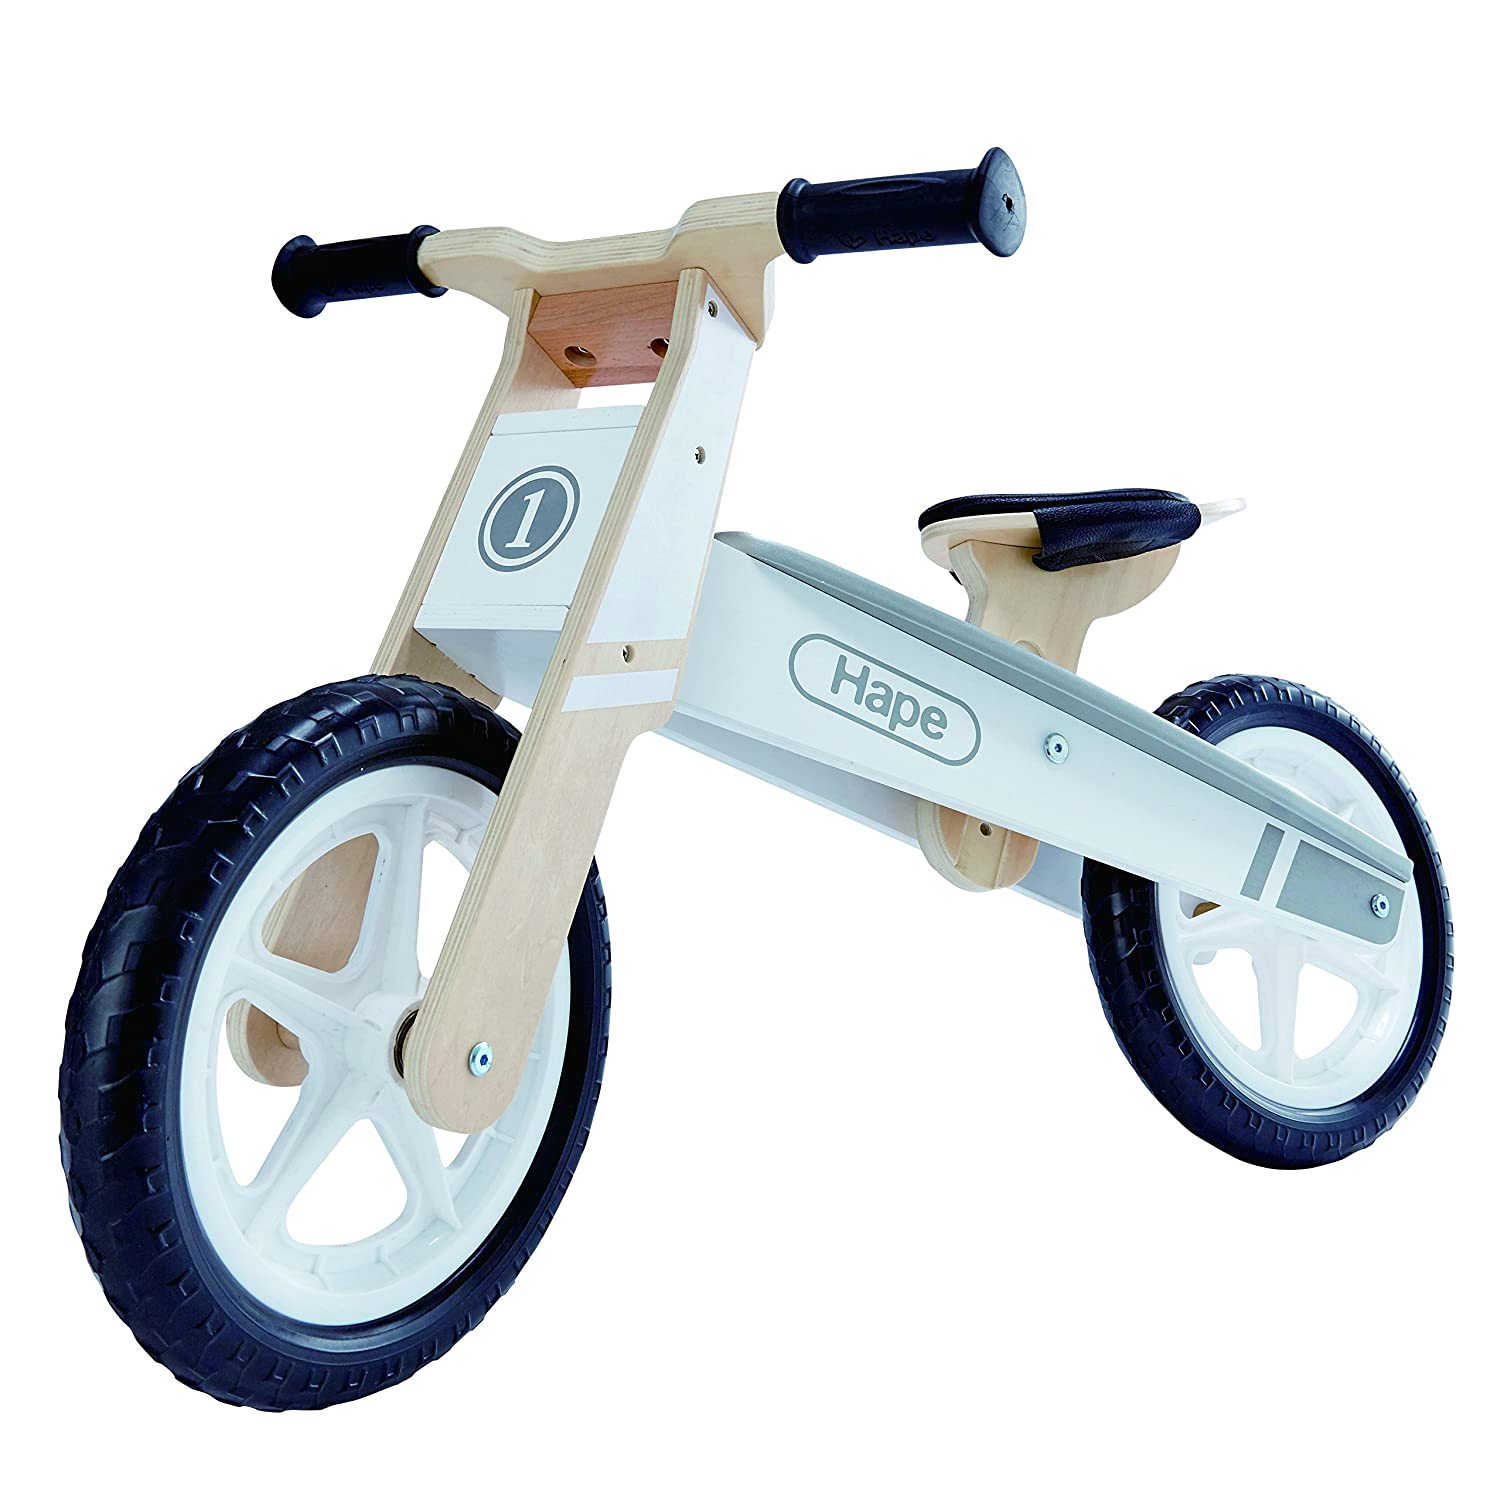 Hape Wooden Wonder Ride On Toddler Balance Bike E1050